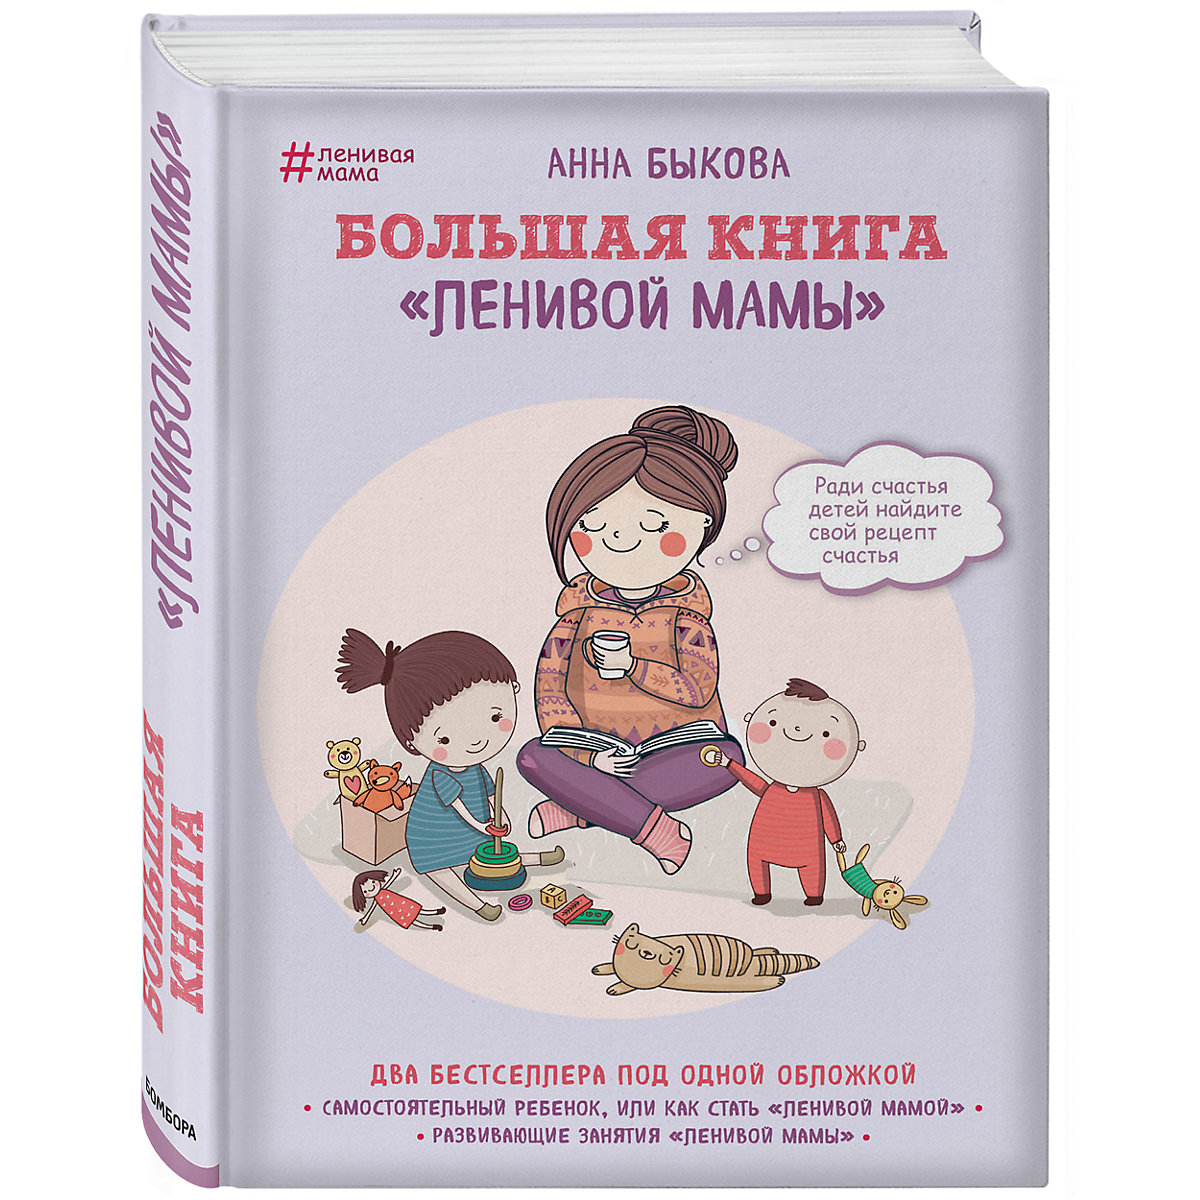 Books EKSMO 7367696 Children Education Encyclopedia Alphabet Dictionary Book For Baby MTpromo